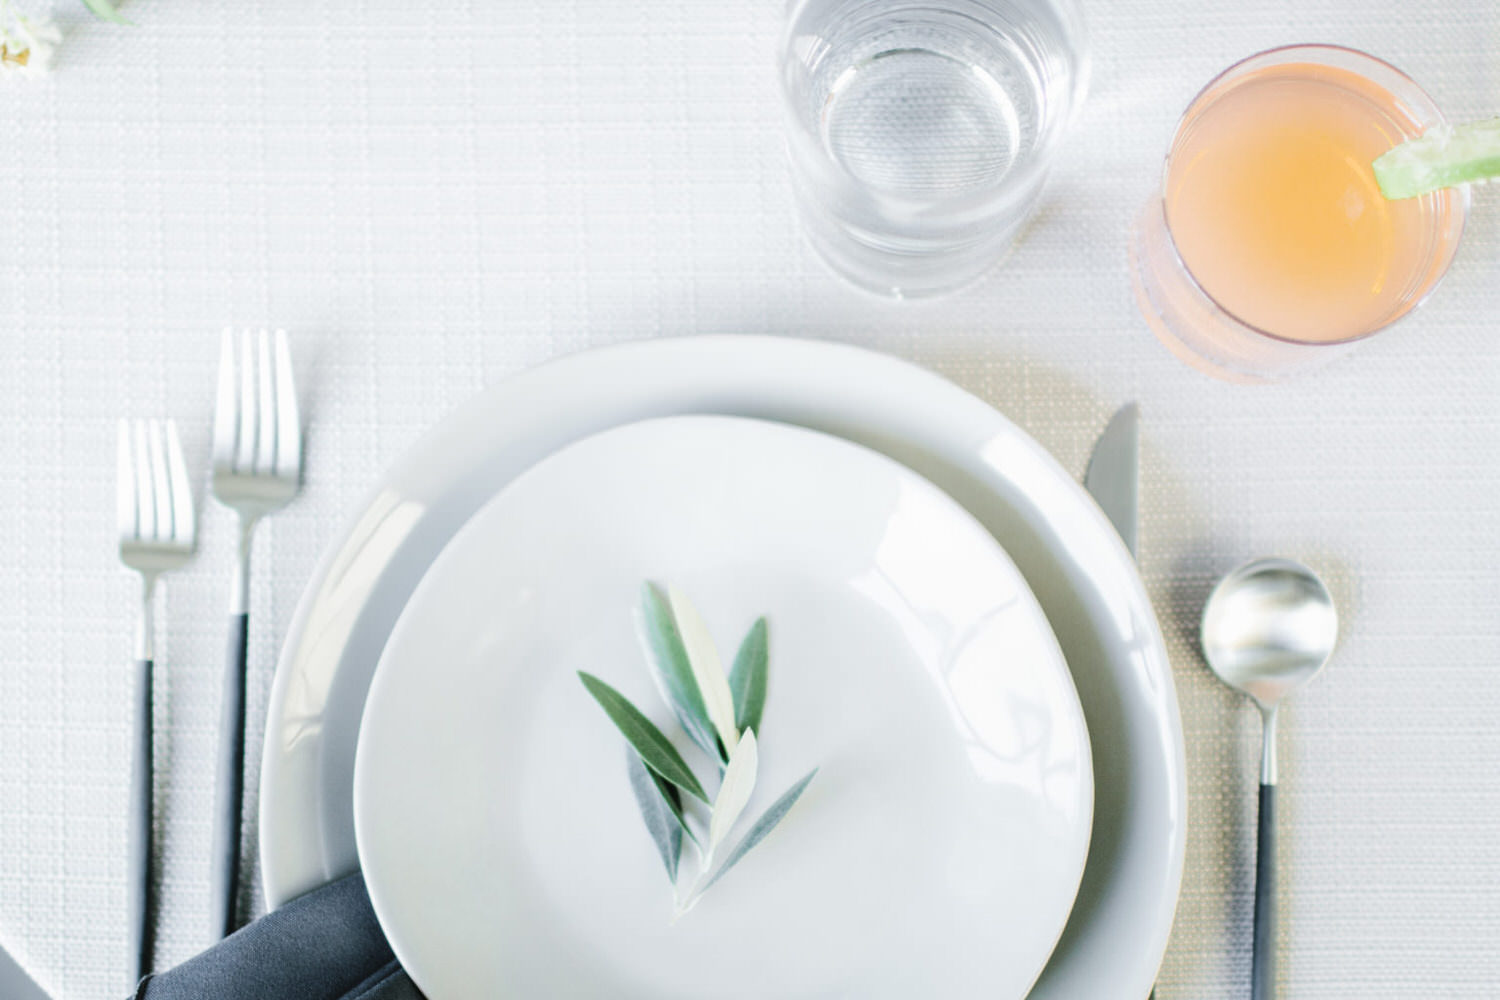 Table setting with white plates and a sprig of a herb, glass of water, silver cutlery